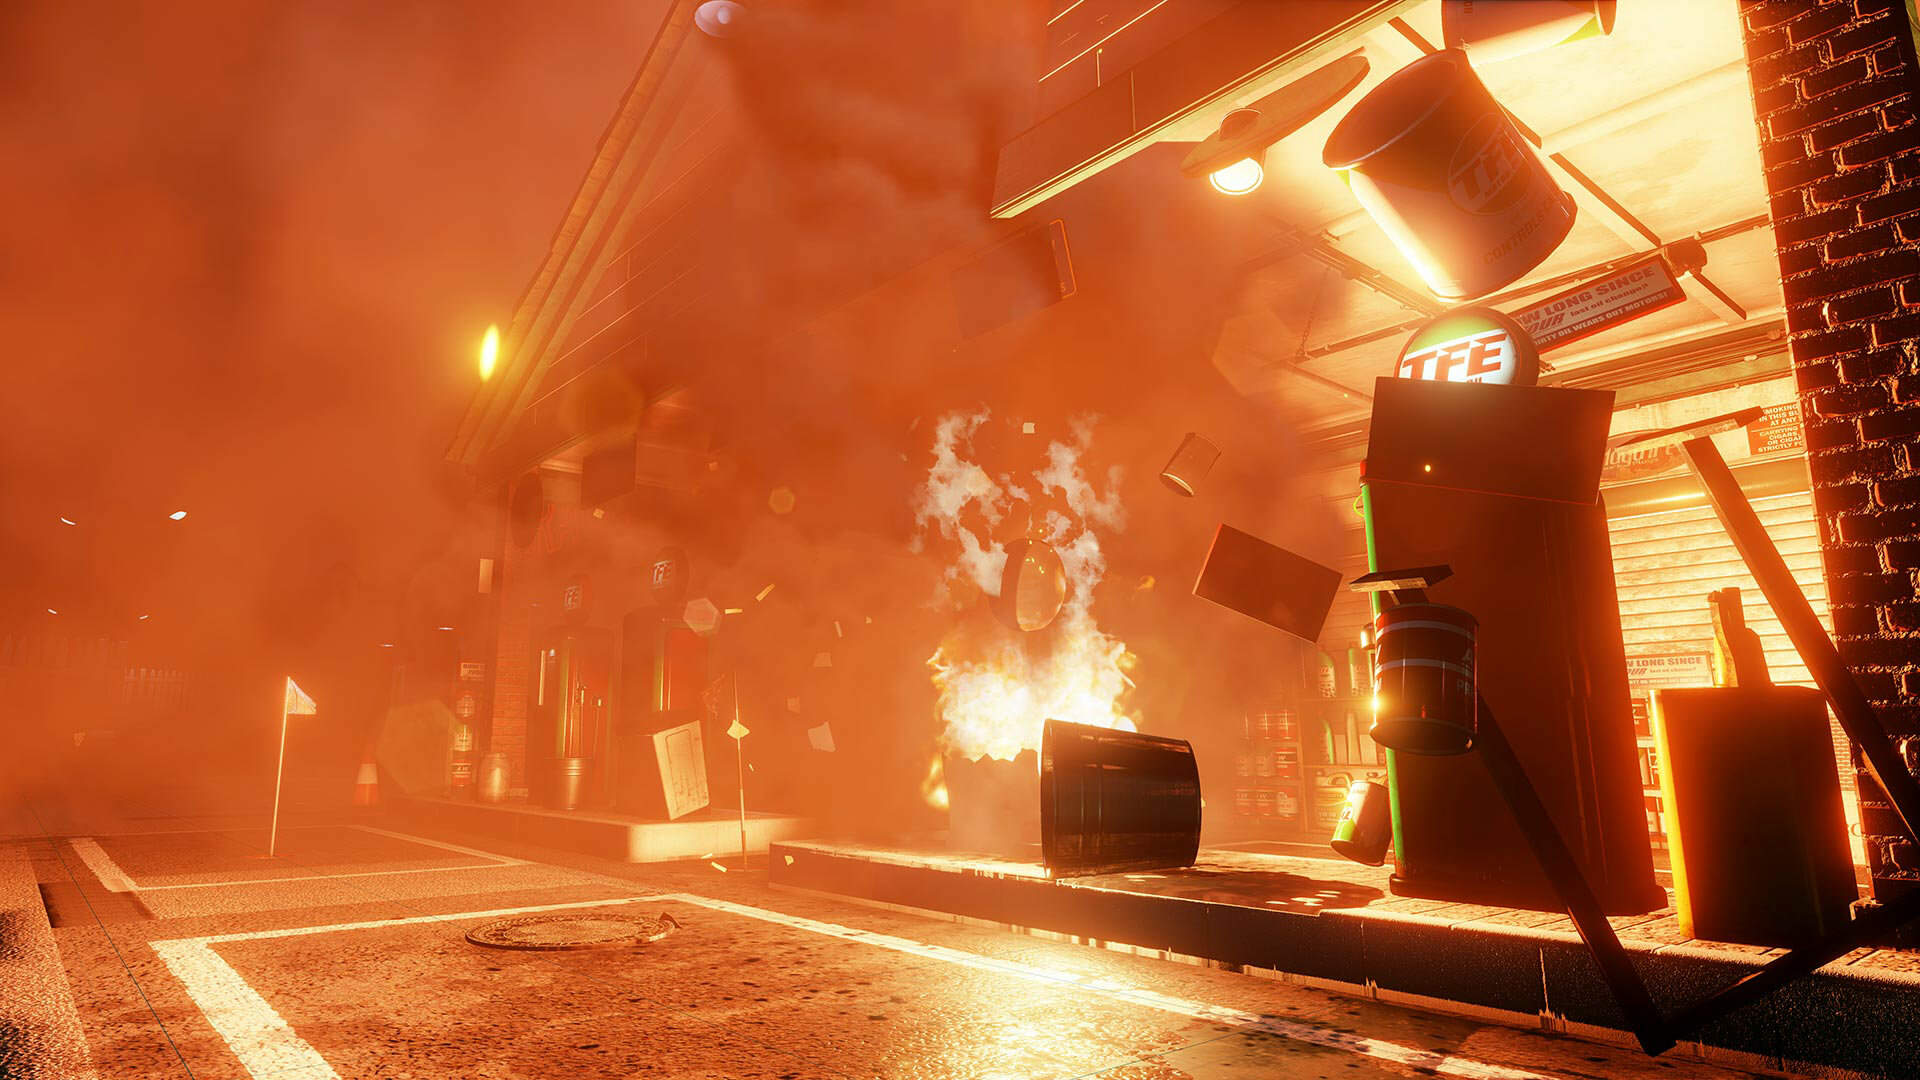 Dangerous Golf PS4 Review: Almost Smashing